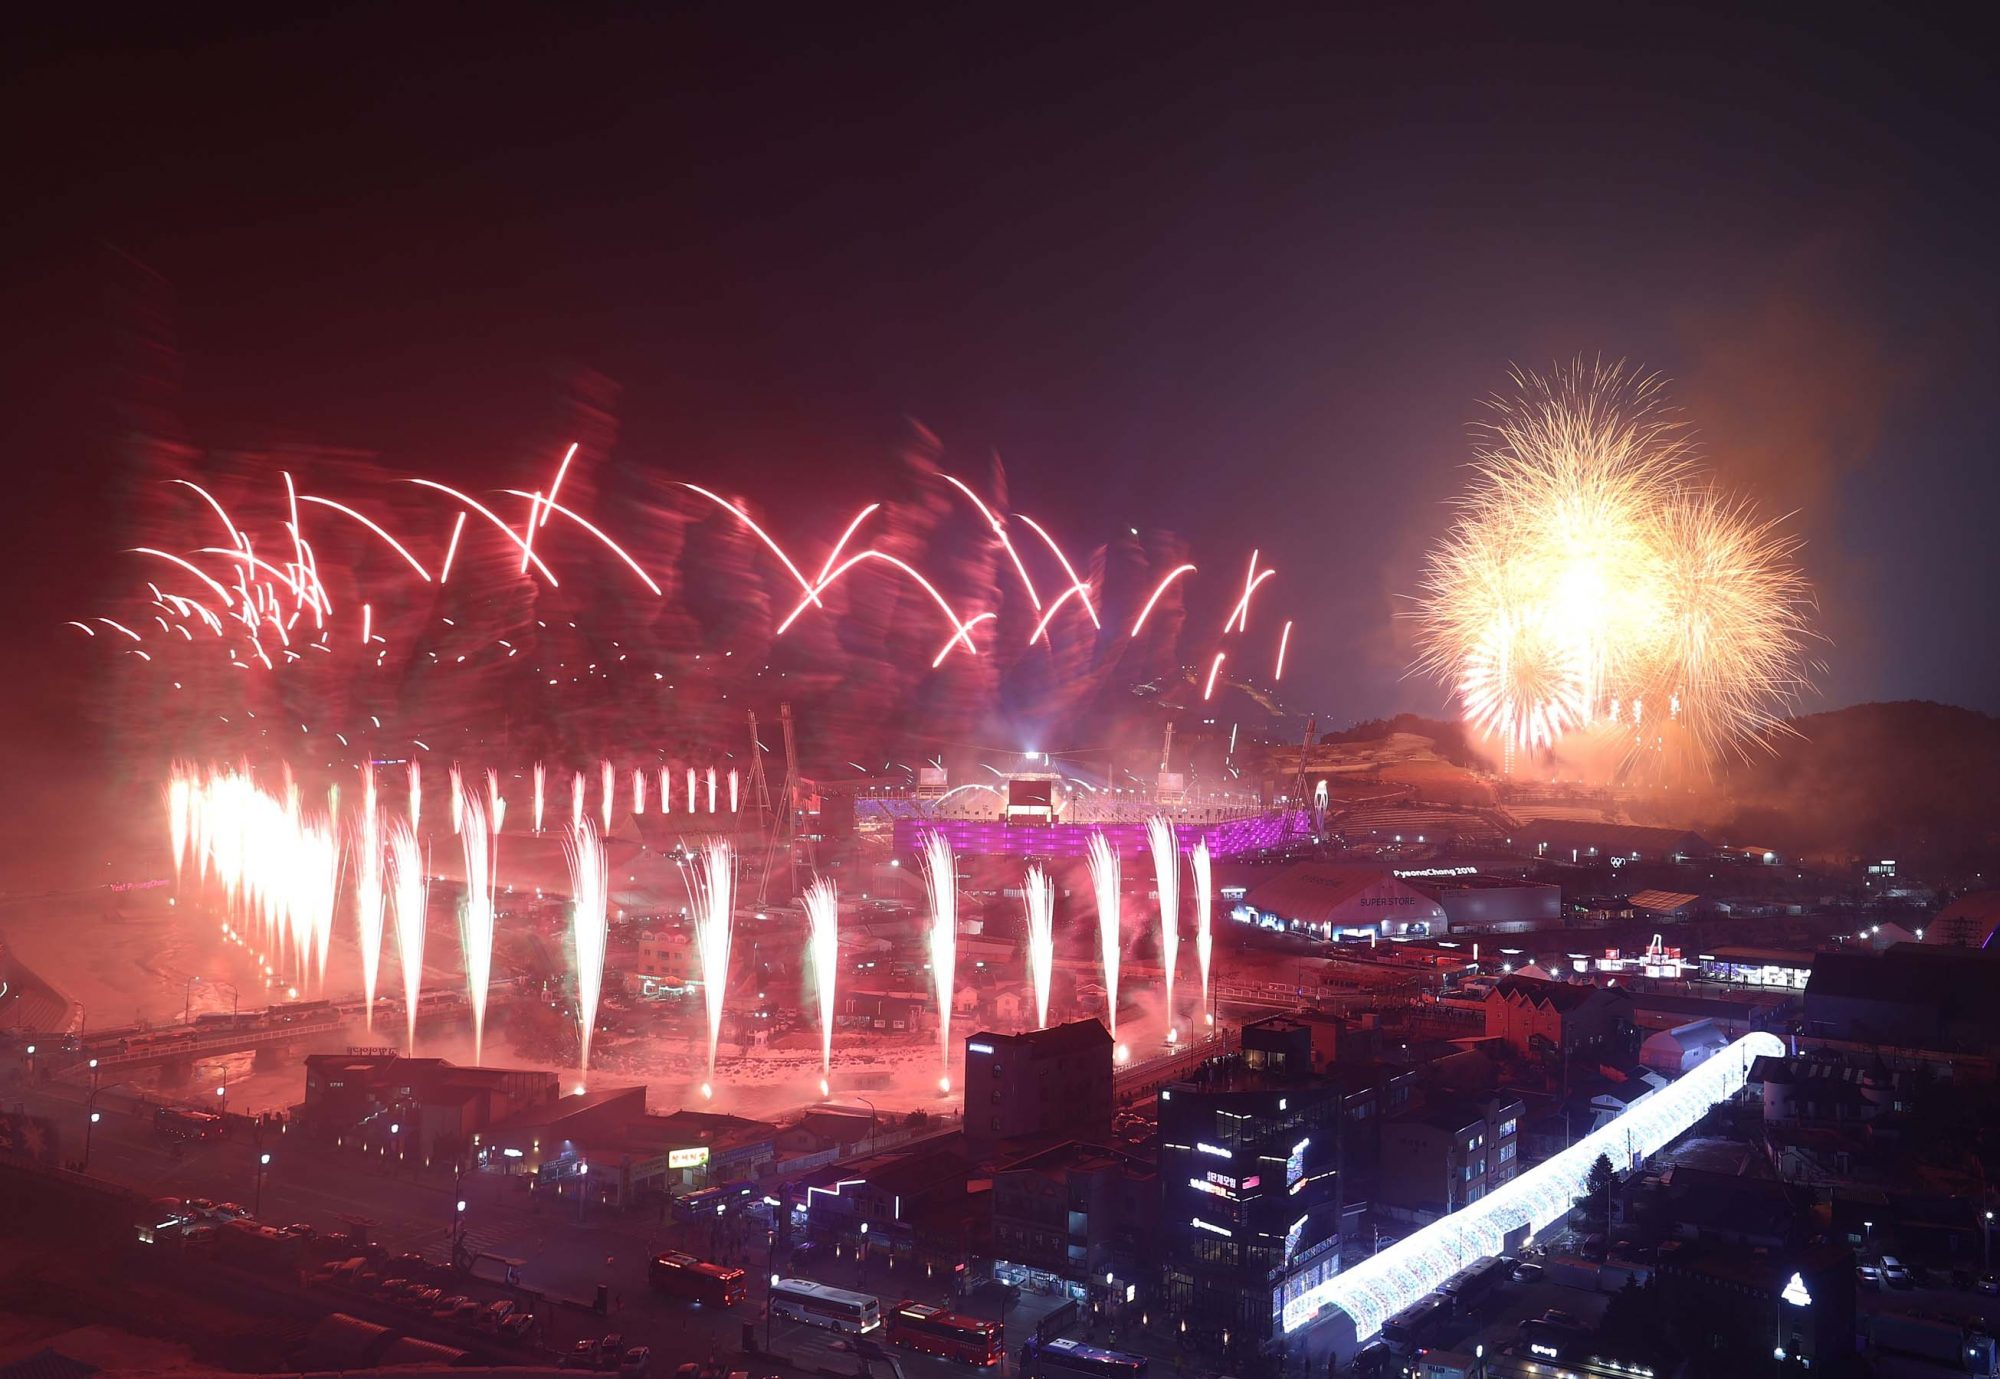 2018 Winter Olympic Games - Fireworks during Opening Ceremony